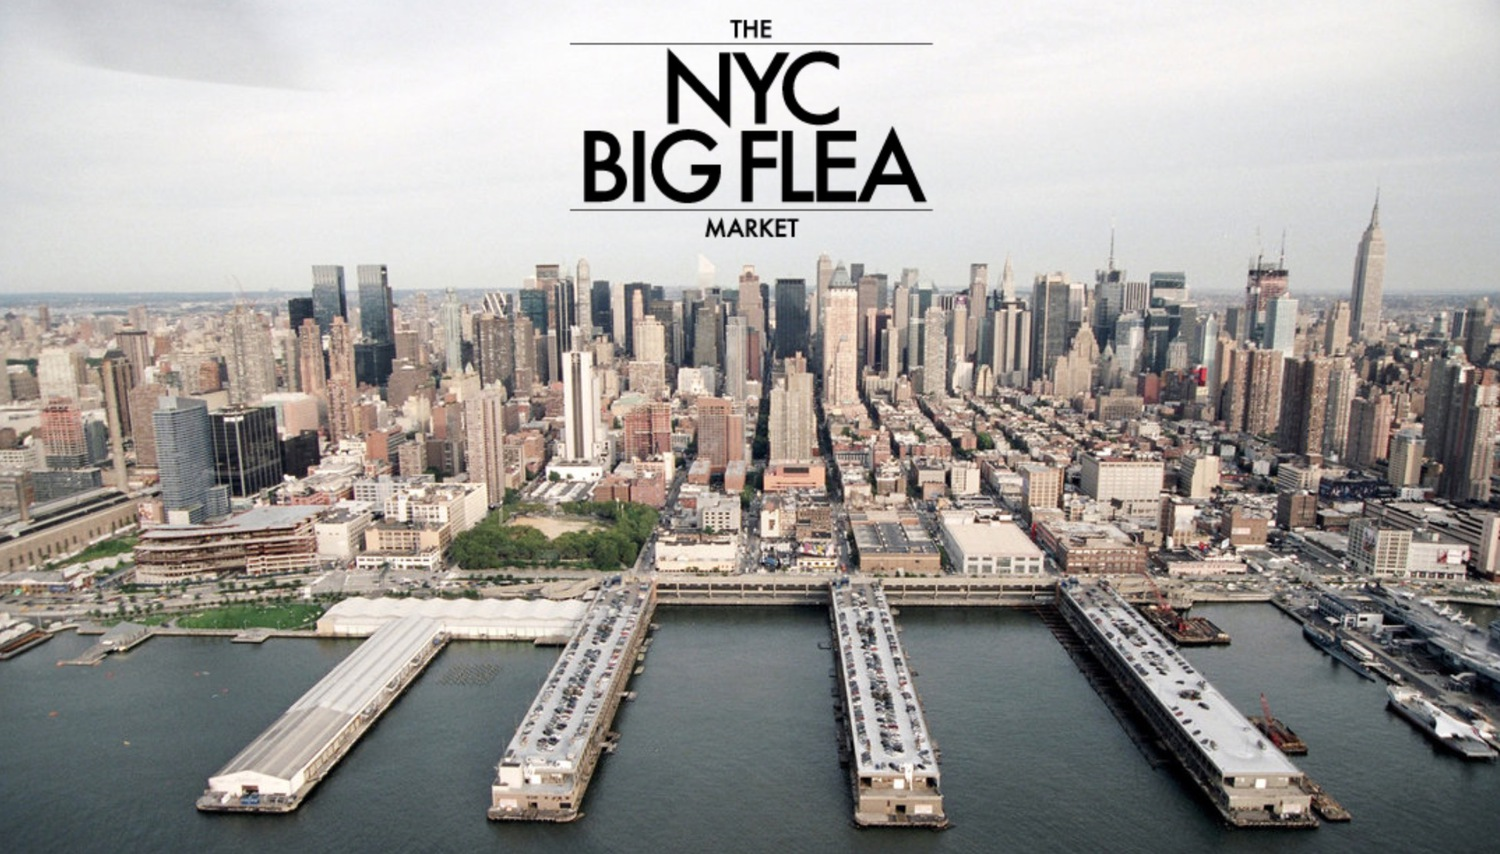 The Big Flea NYC - September 27th and 28th - Pier 94